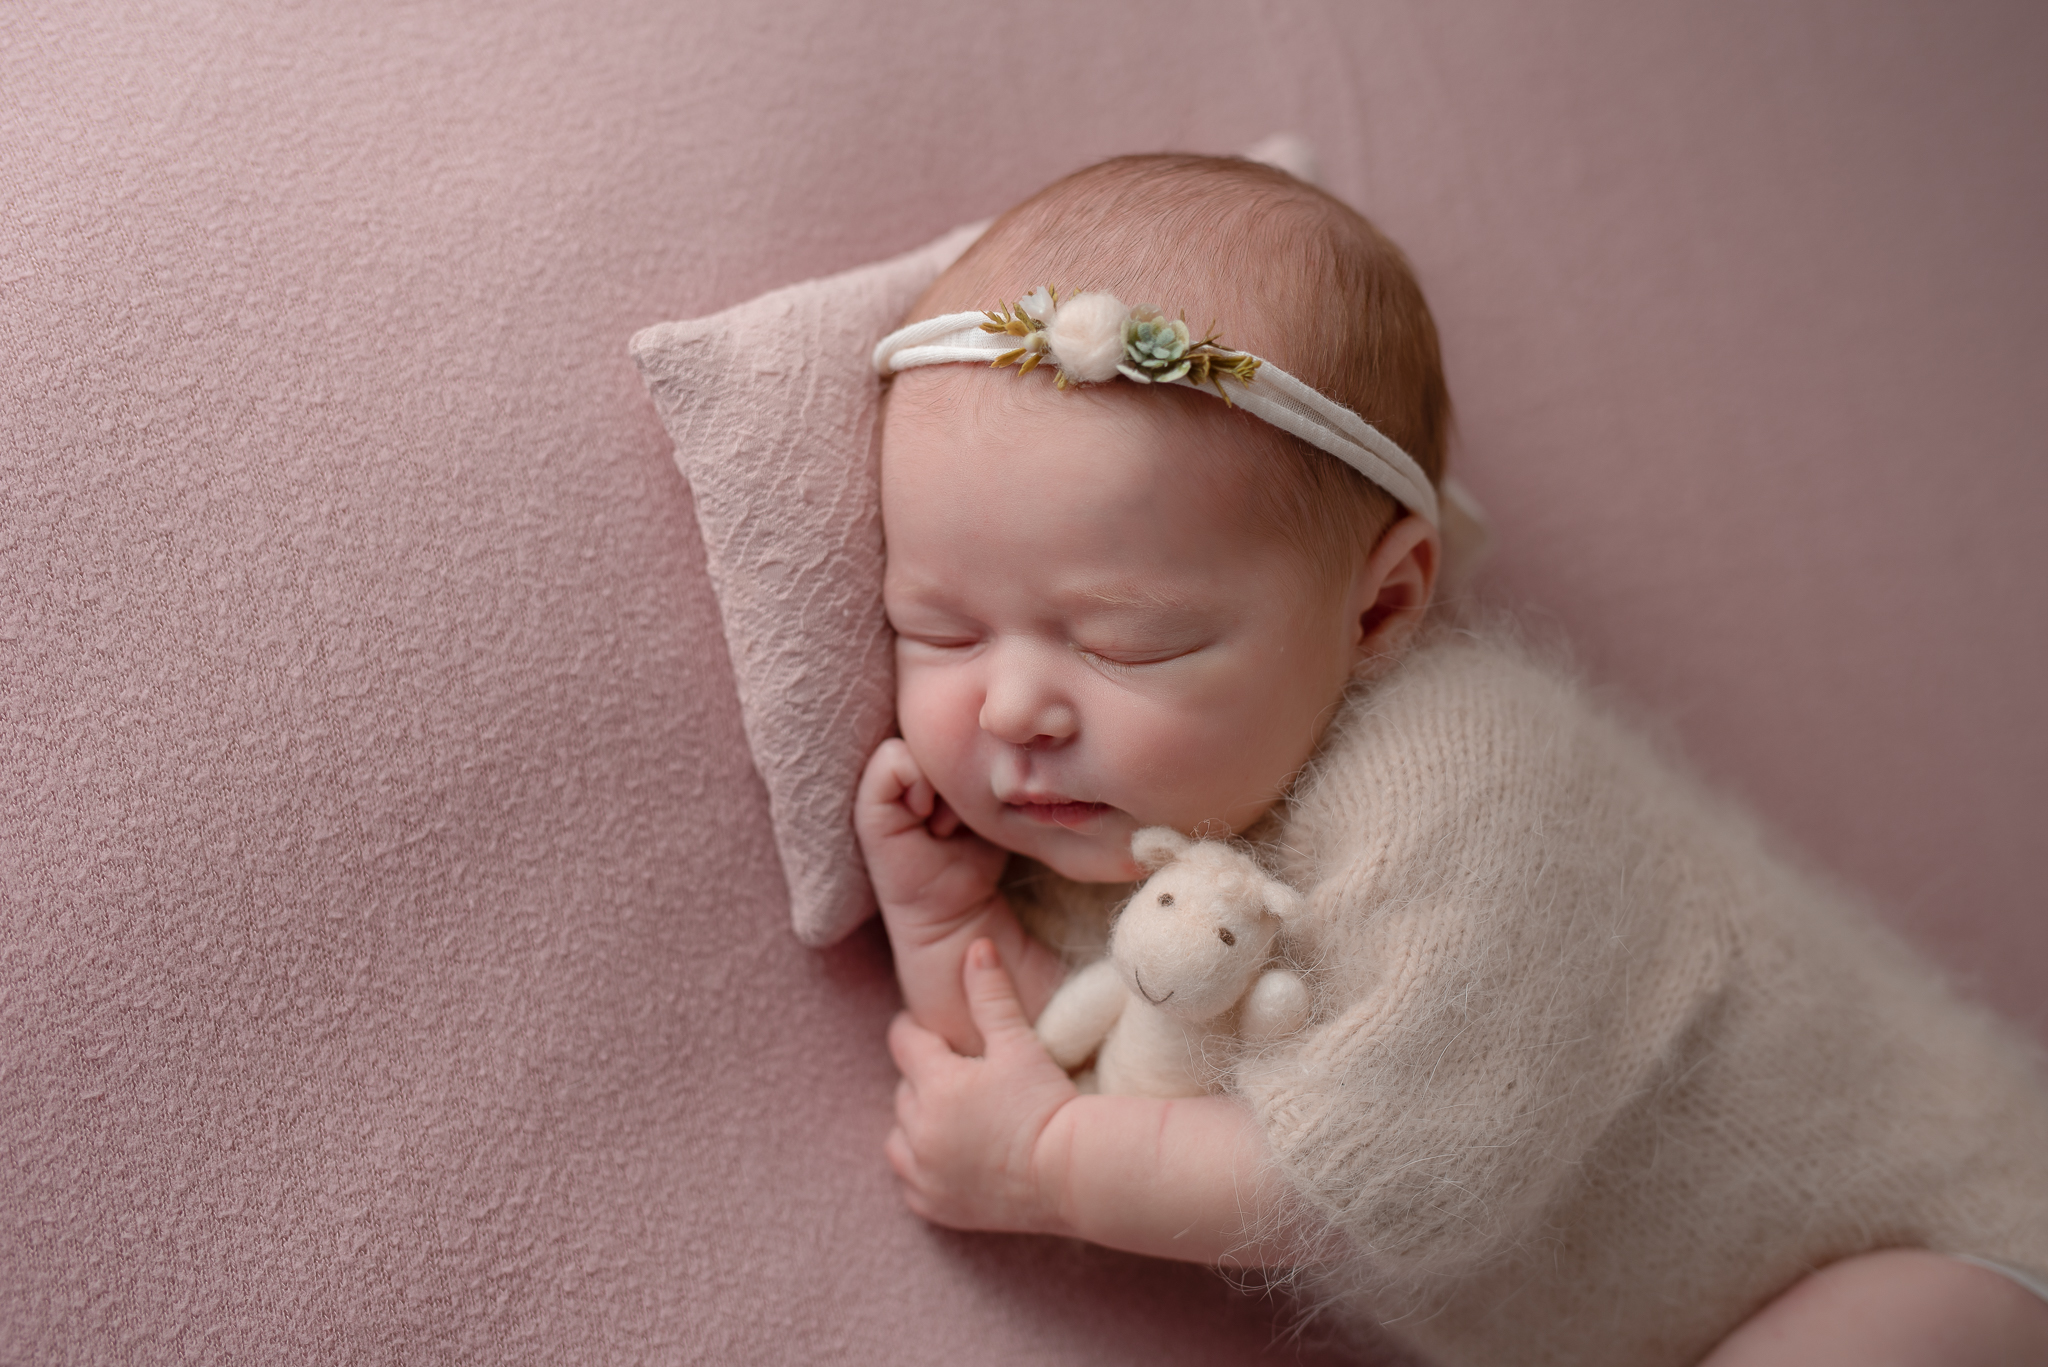 Newborn534NaomiLuciennePhotography032019-Edit.jpg